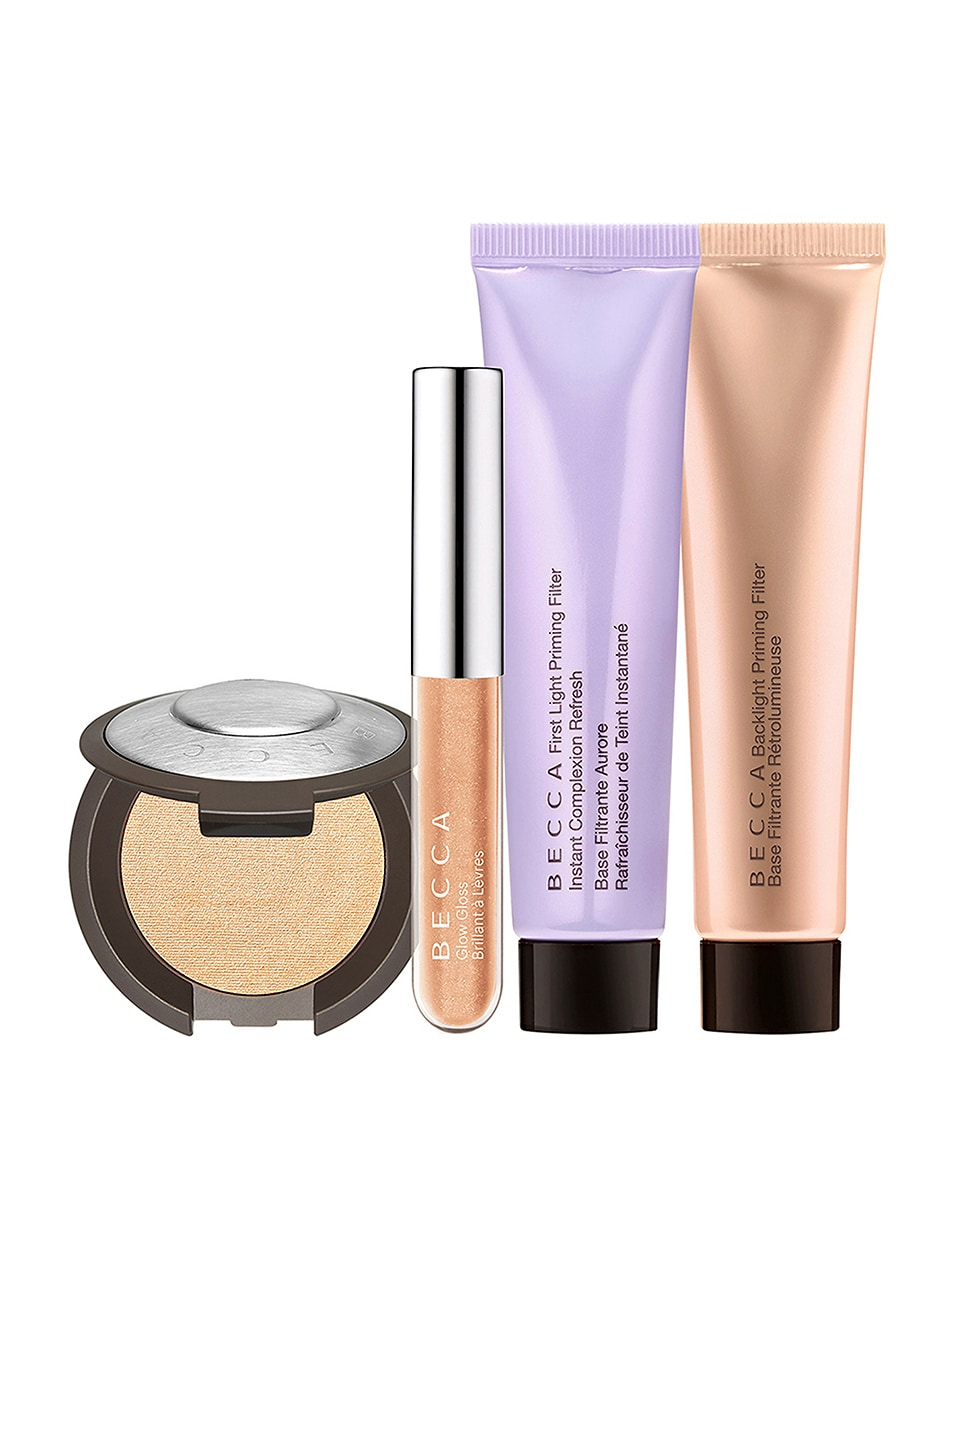 BECCA Glow Essentials Kit